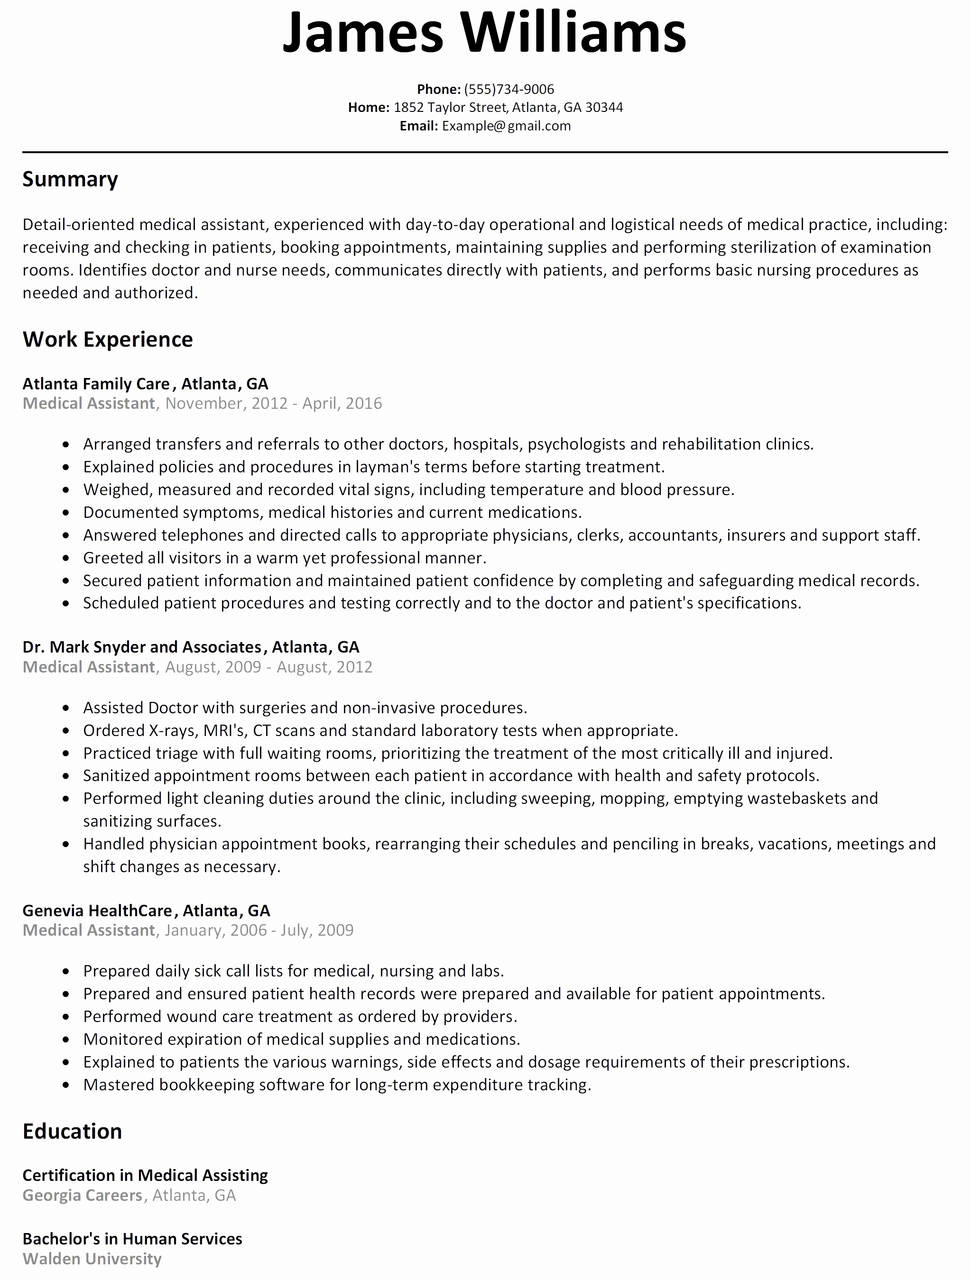 Free Resume Word Templates - Resume Template Word Download New Free Resume Templates Downloads